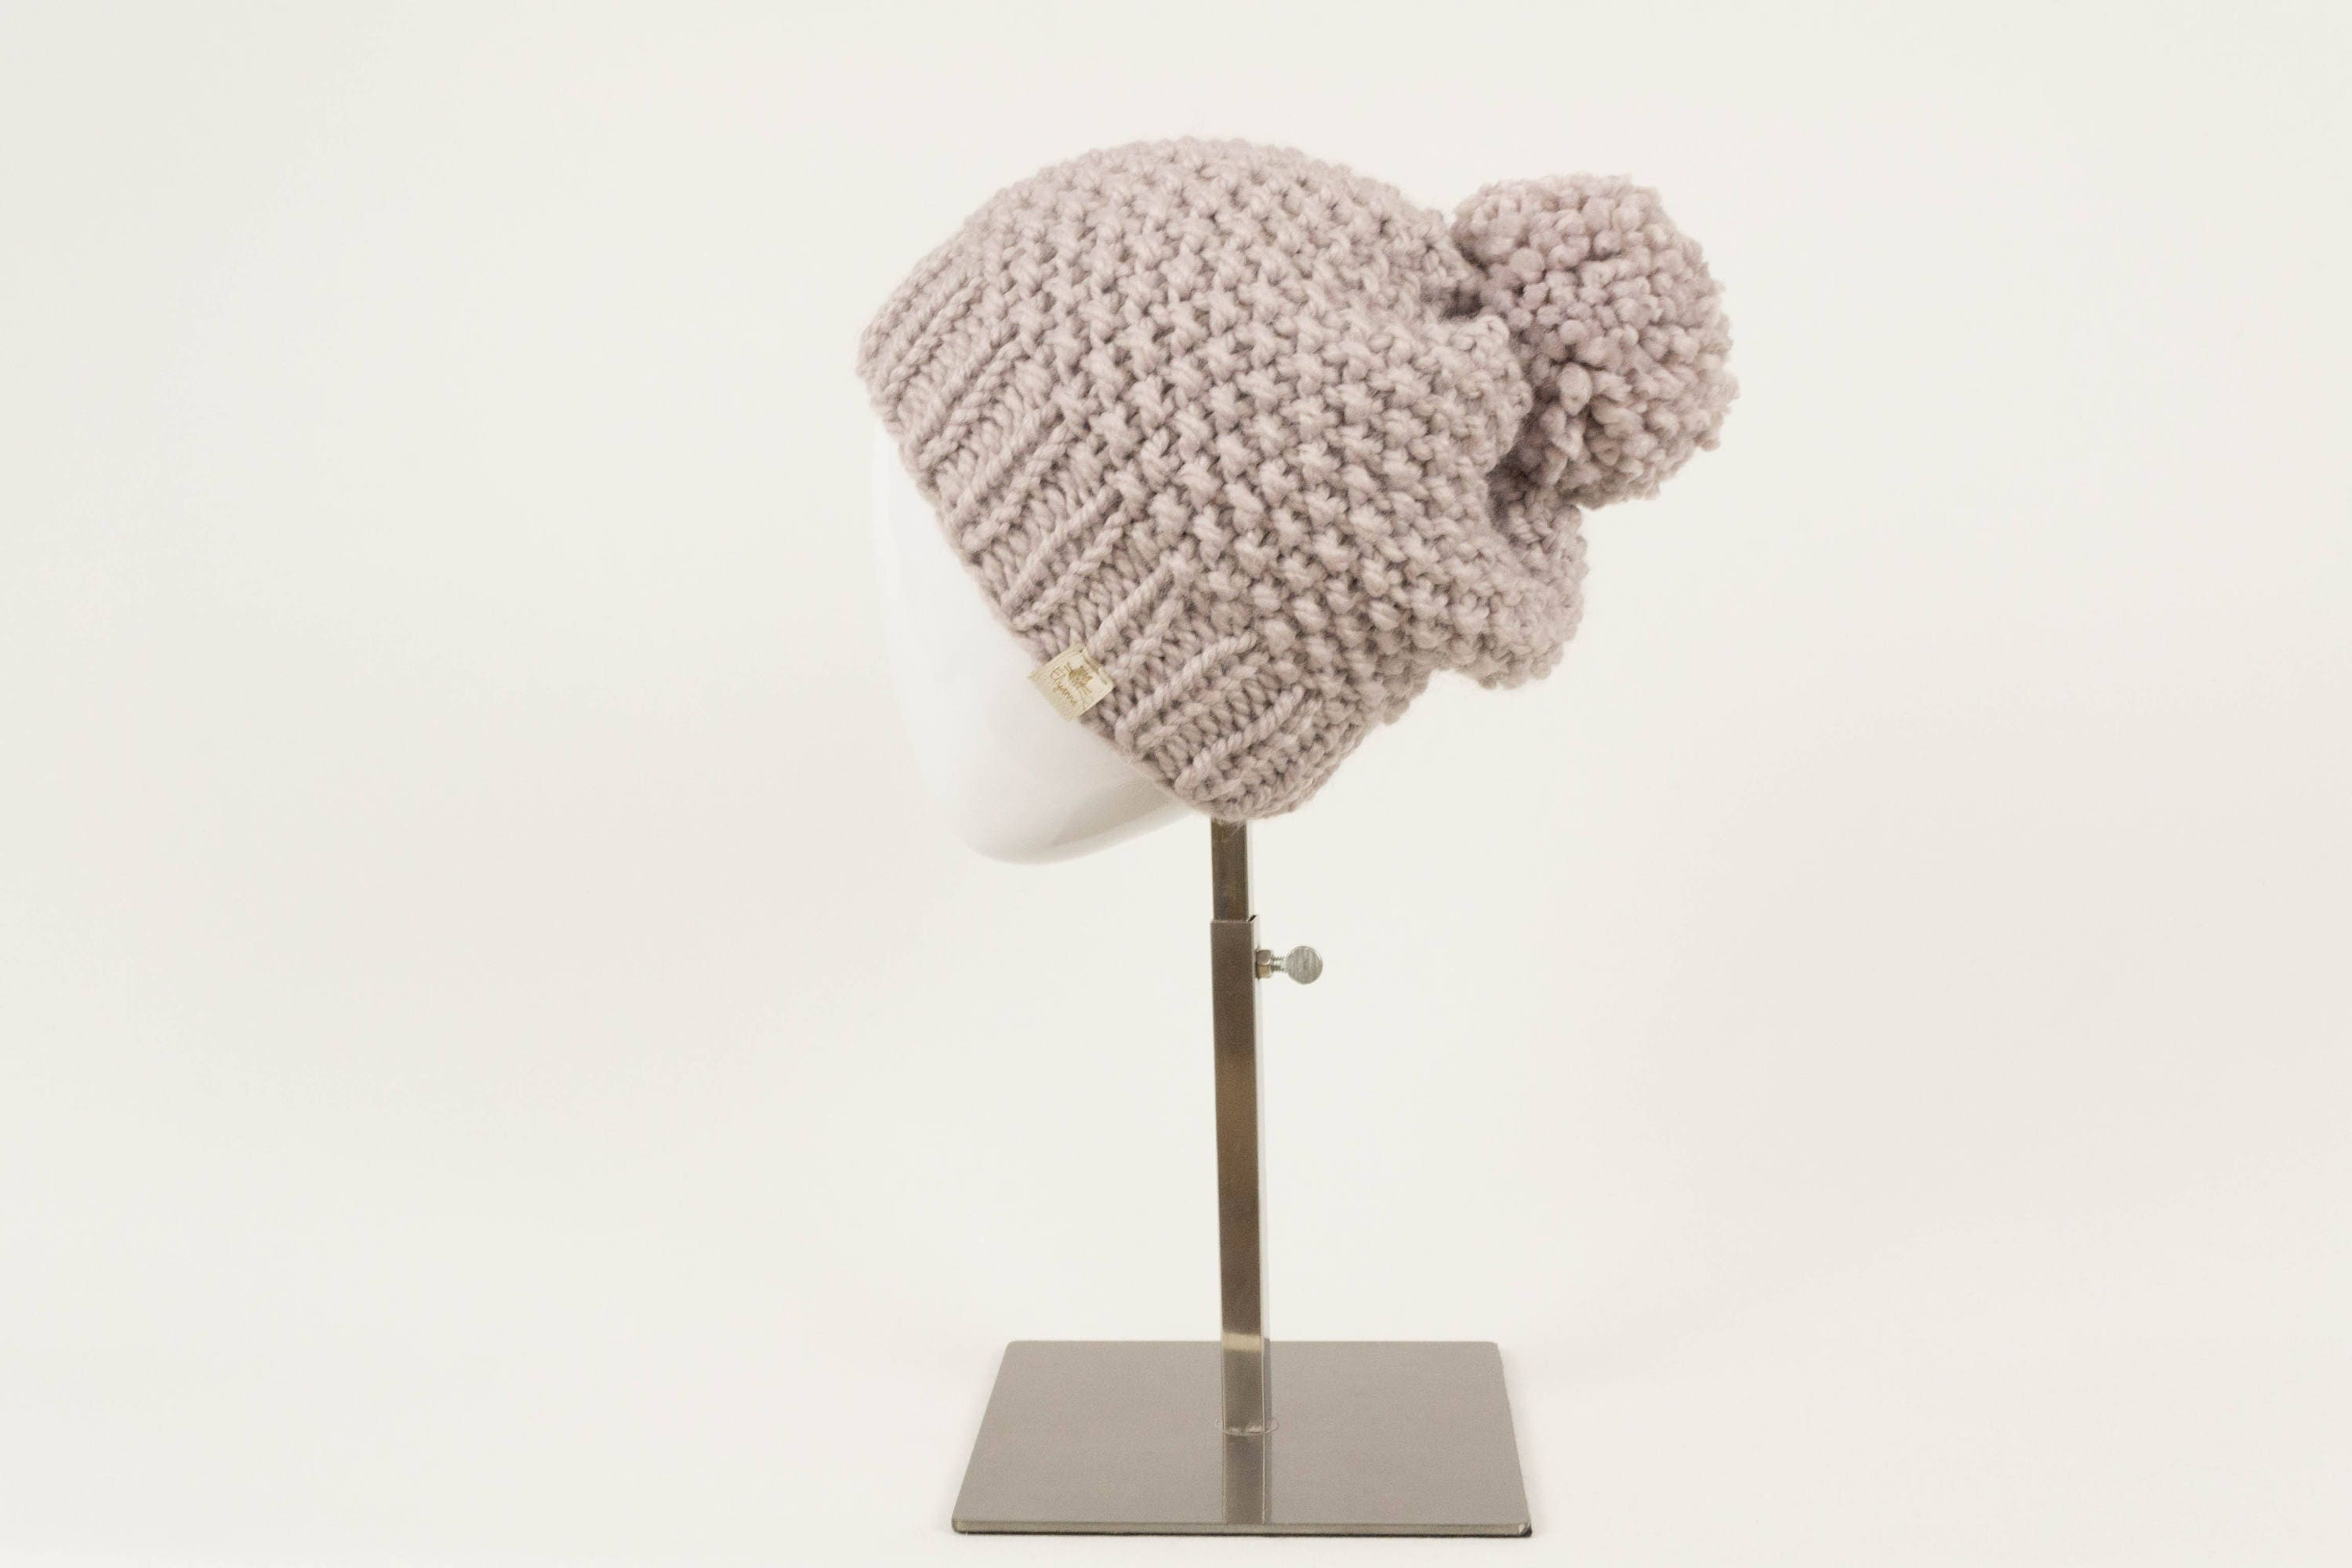 Chunky Knit Pom Pom Hat Wool Slouchy Hat Wool Knit Toque  5d8978b204